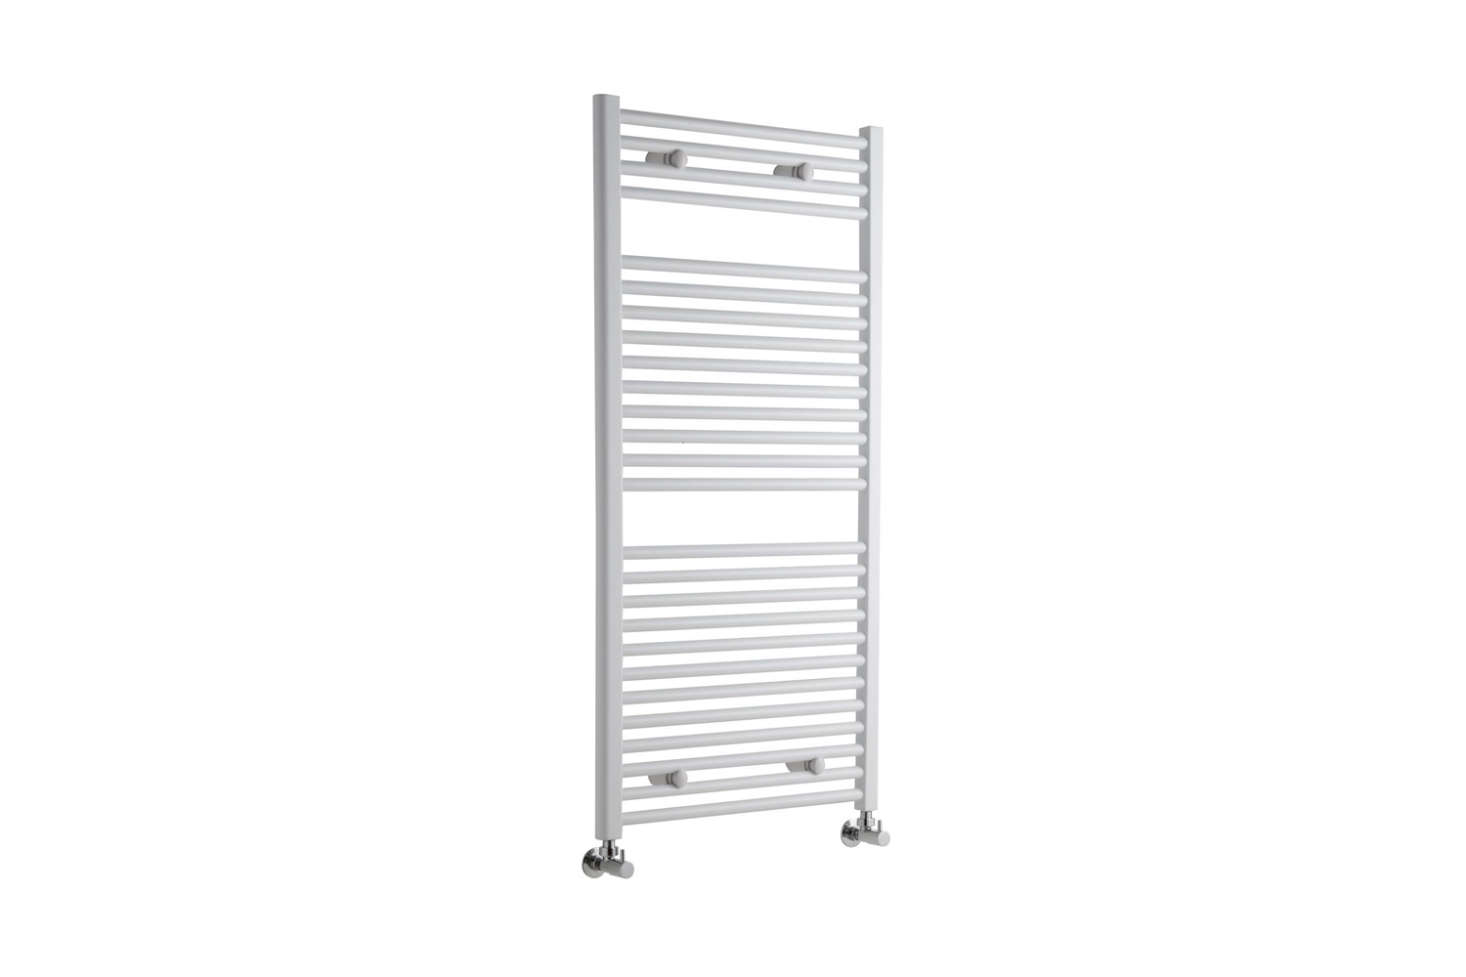 For a similar wall-mounted towel warmer, the Etna Hydronic White Heated Towel Warmer measuring 47.25 by 23.5 inches and available with angled or straight valves; $289.95 at Hudson Reed.